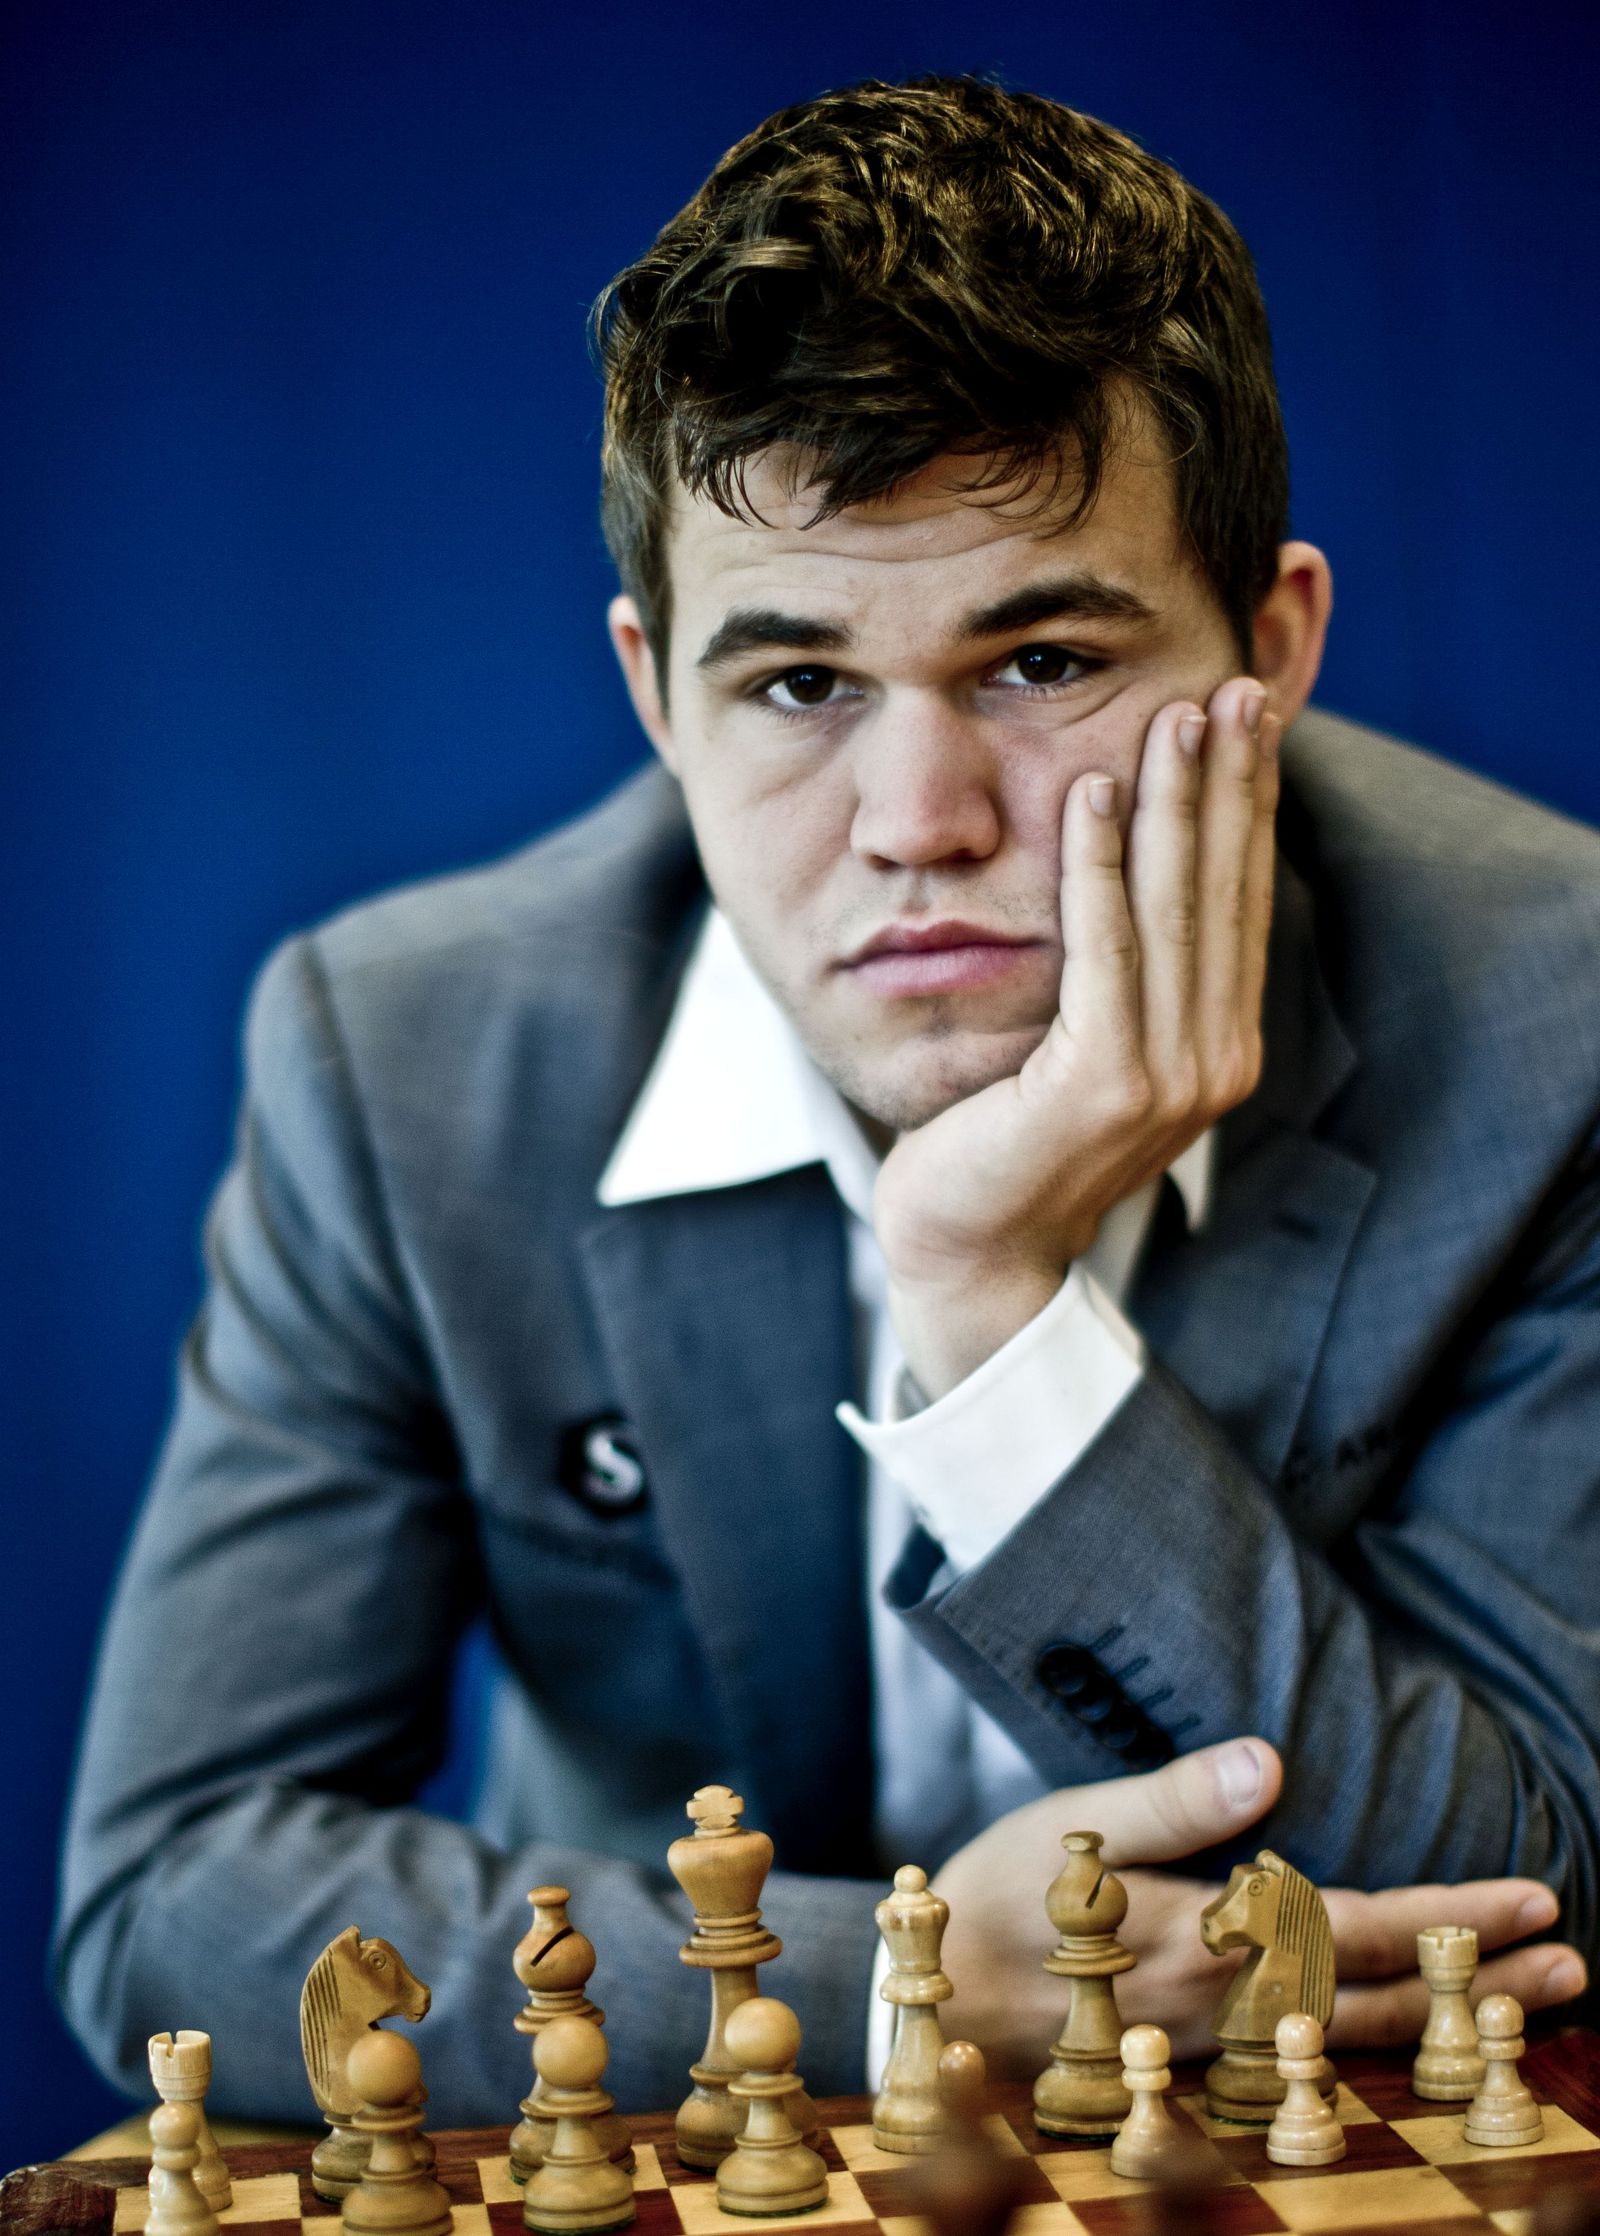 NORWAY-LIFESTYLE-CHESS-CARLSEN